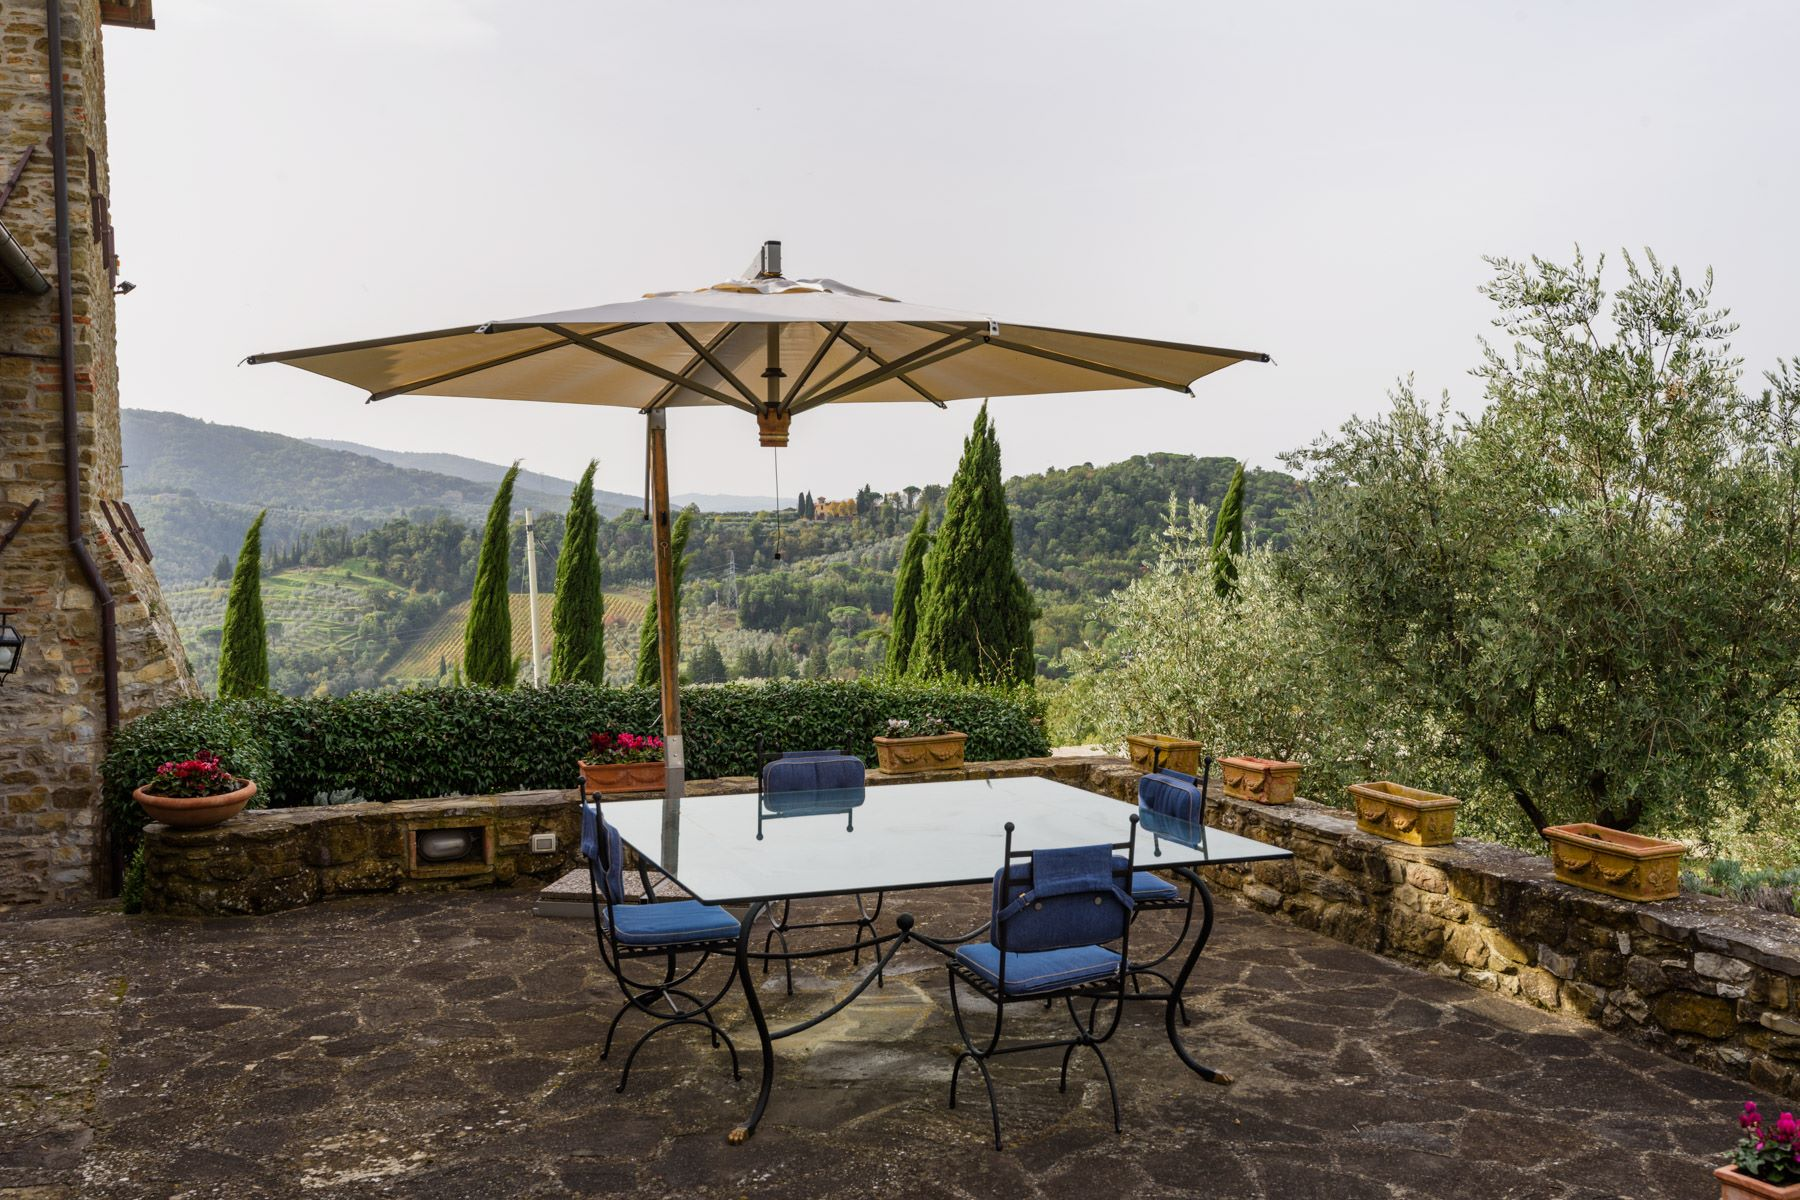 Additional photo for property listing at Magnifico casale con torre nel cuore del Chianti Via Rubbiana Other Florence, Firenze 50022 Italia